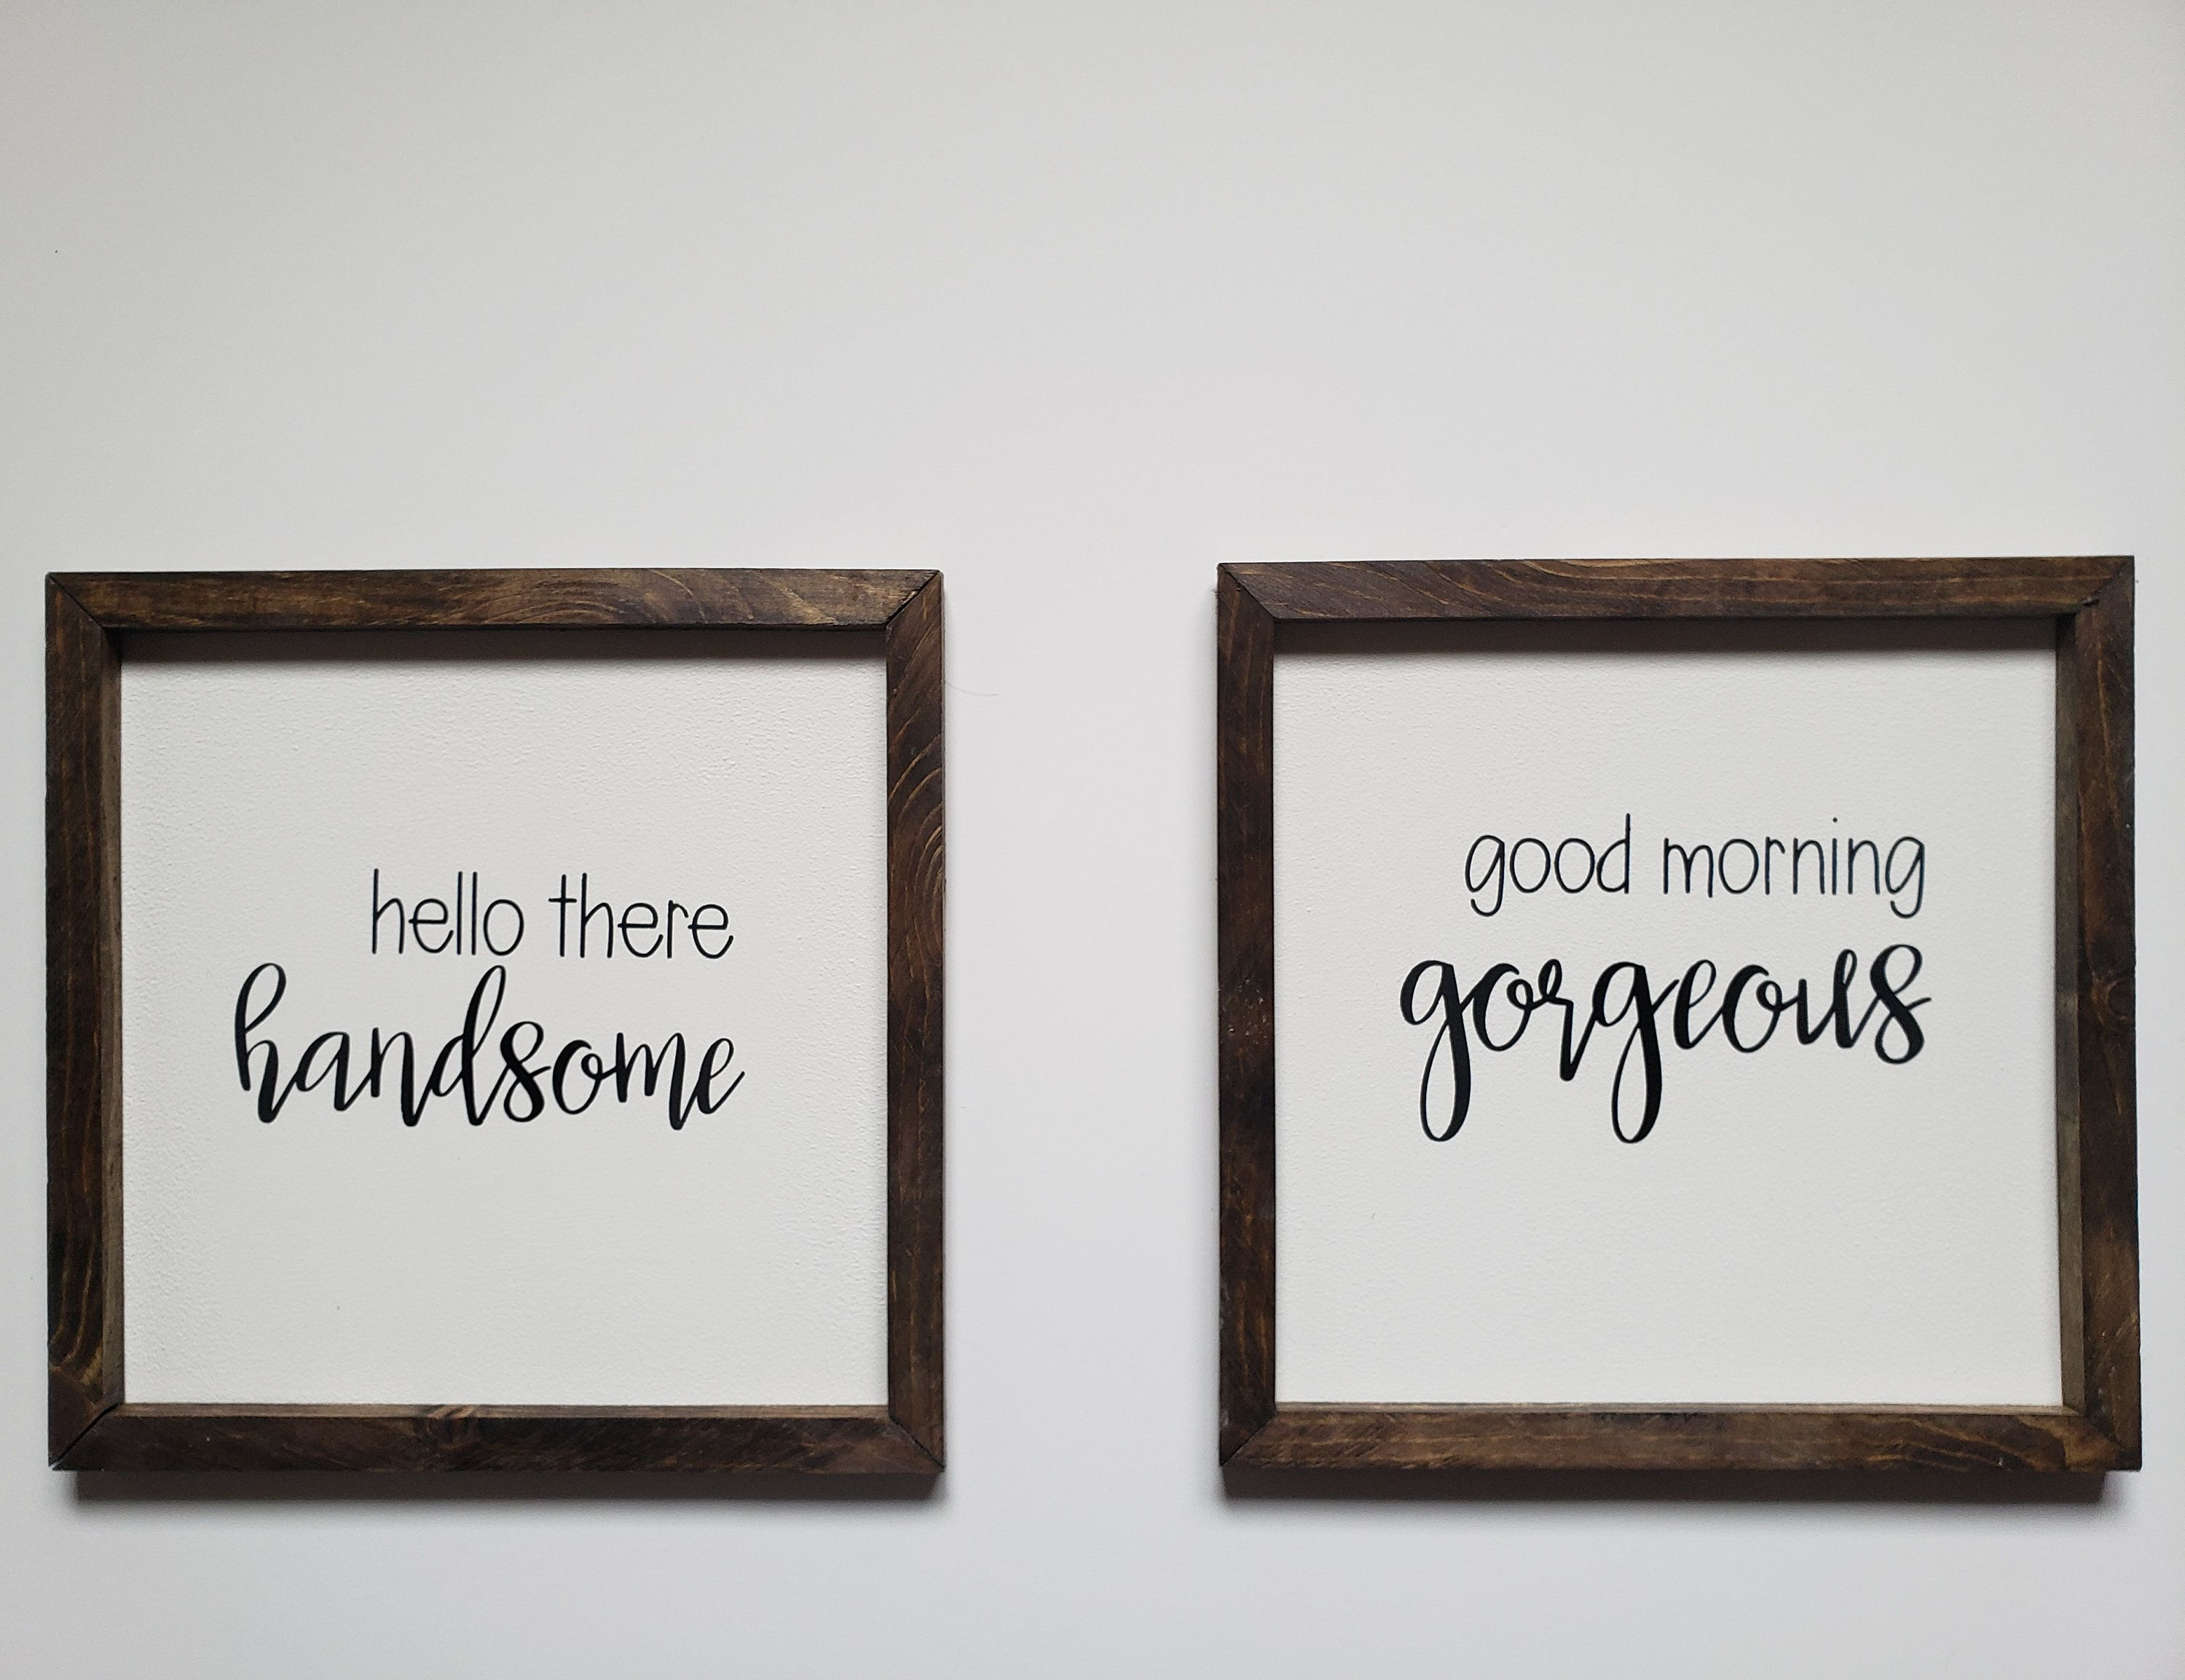 Good Morning Gorgeous Sign Hello There Handsome Set Of Wooden Framed Signs Farmhouse Decor Good Morning Gorgeous Farmhouse Decor Frame